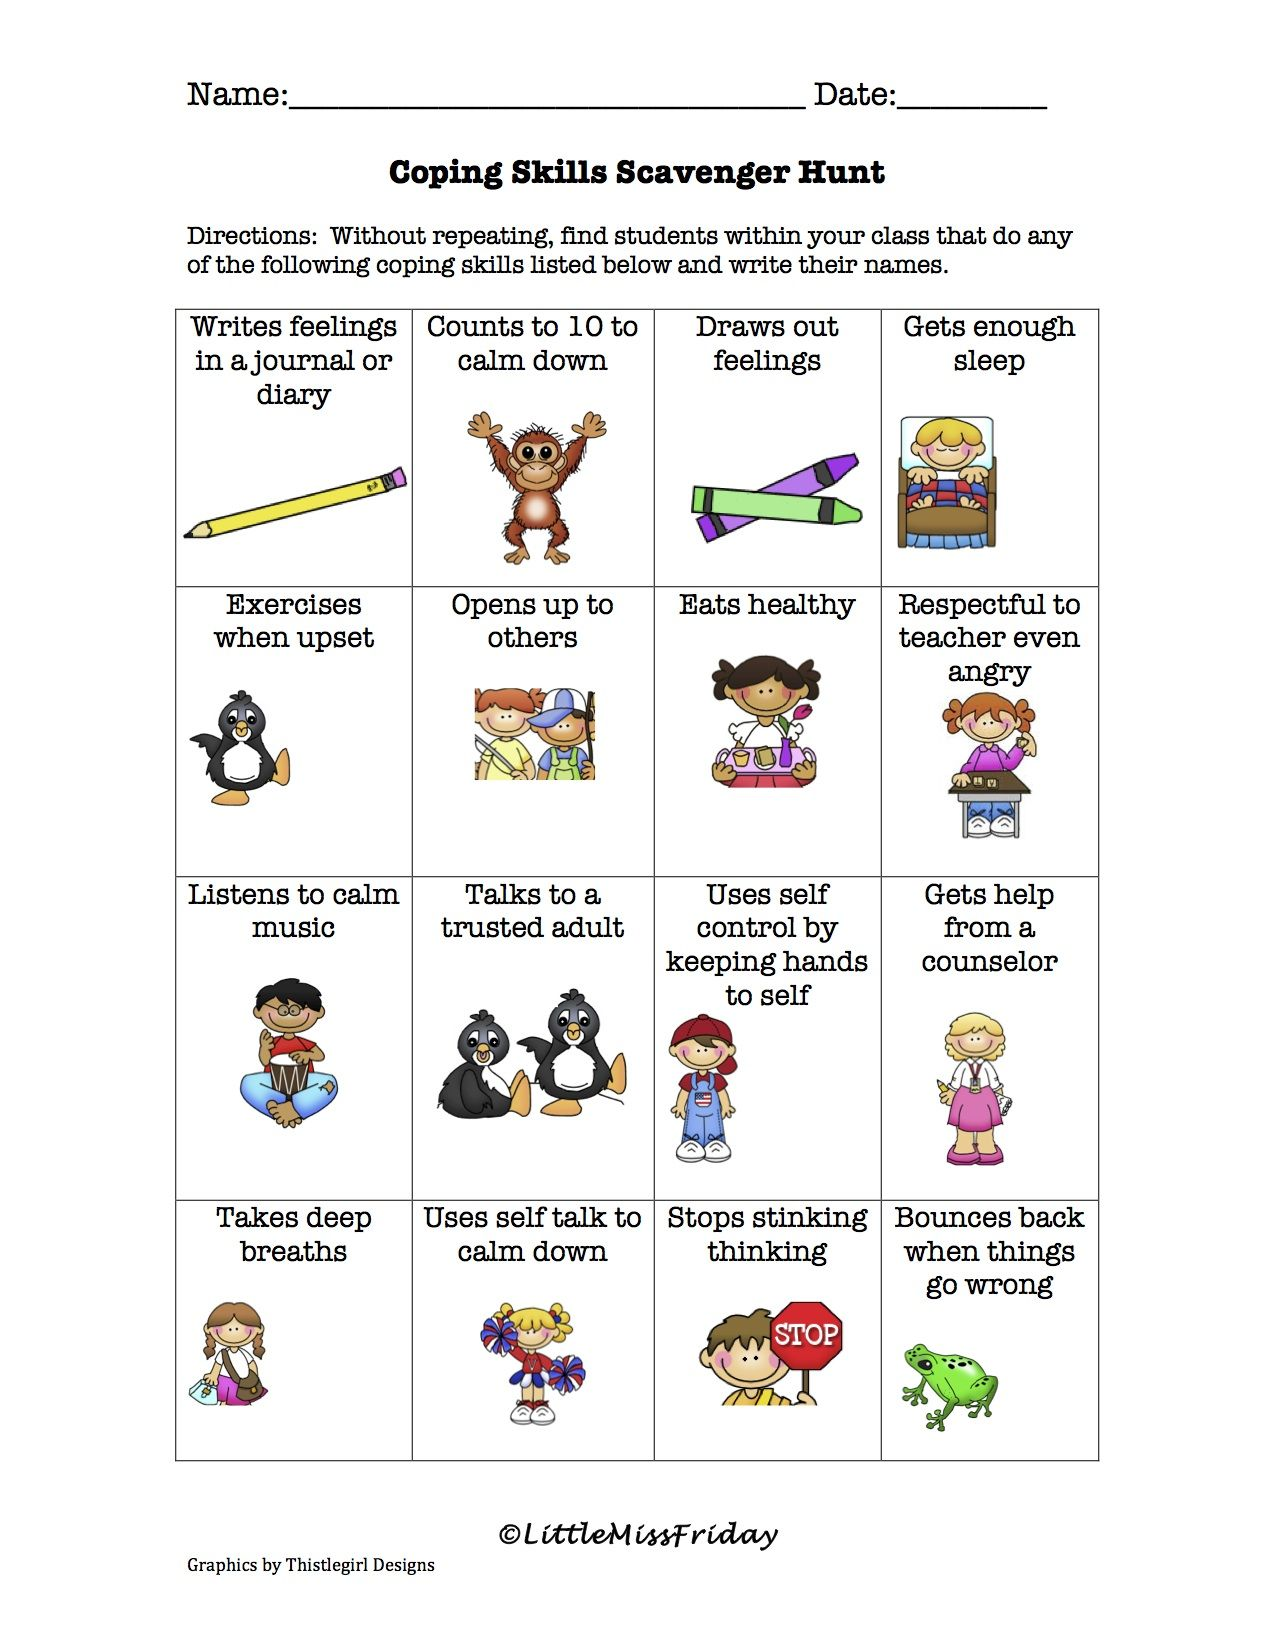 Coping Skills Scavenger Hunt Worksheet